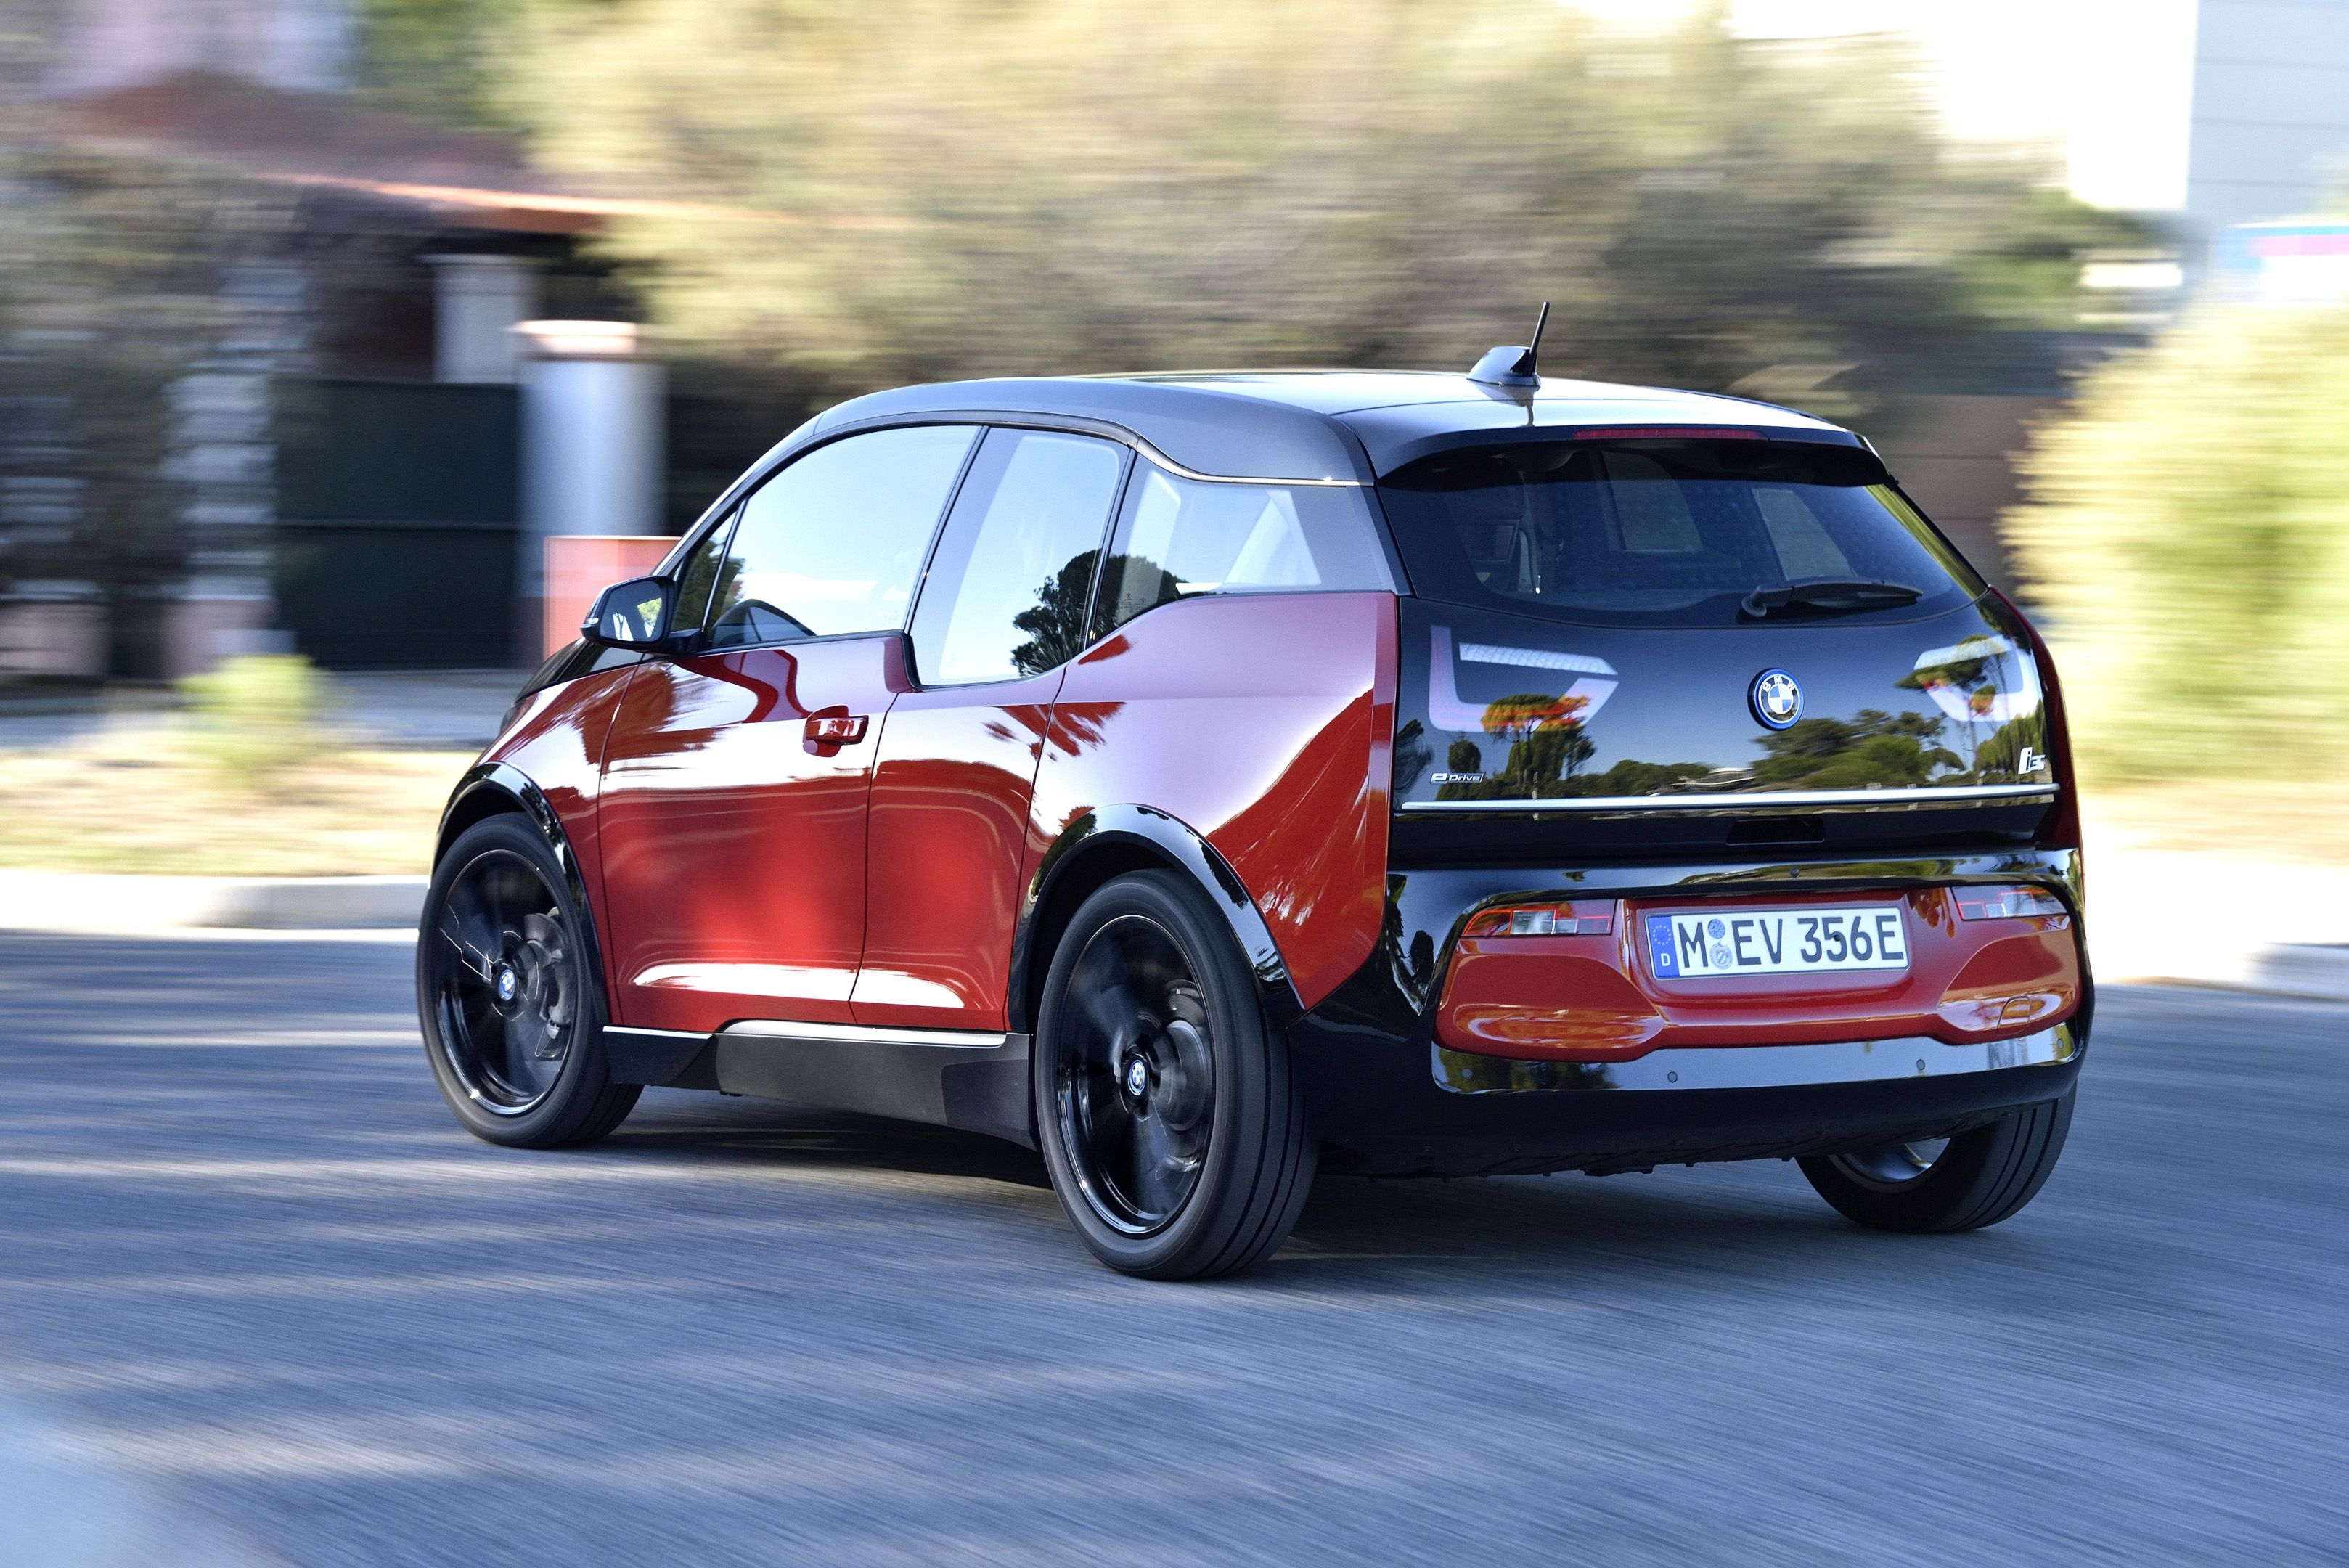 BMW i3s (I01) hd photo